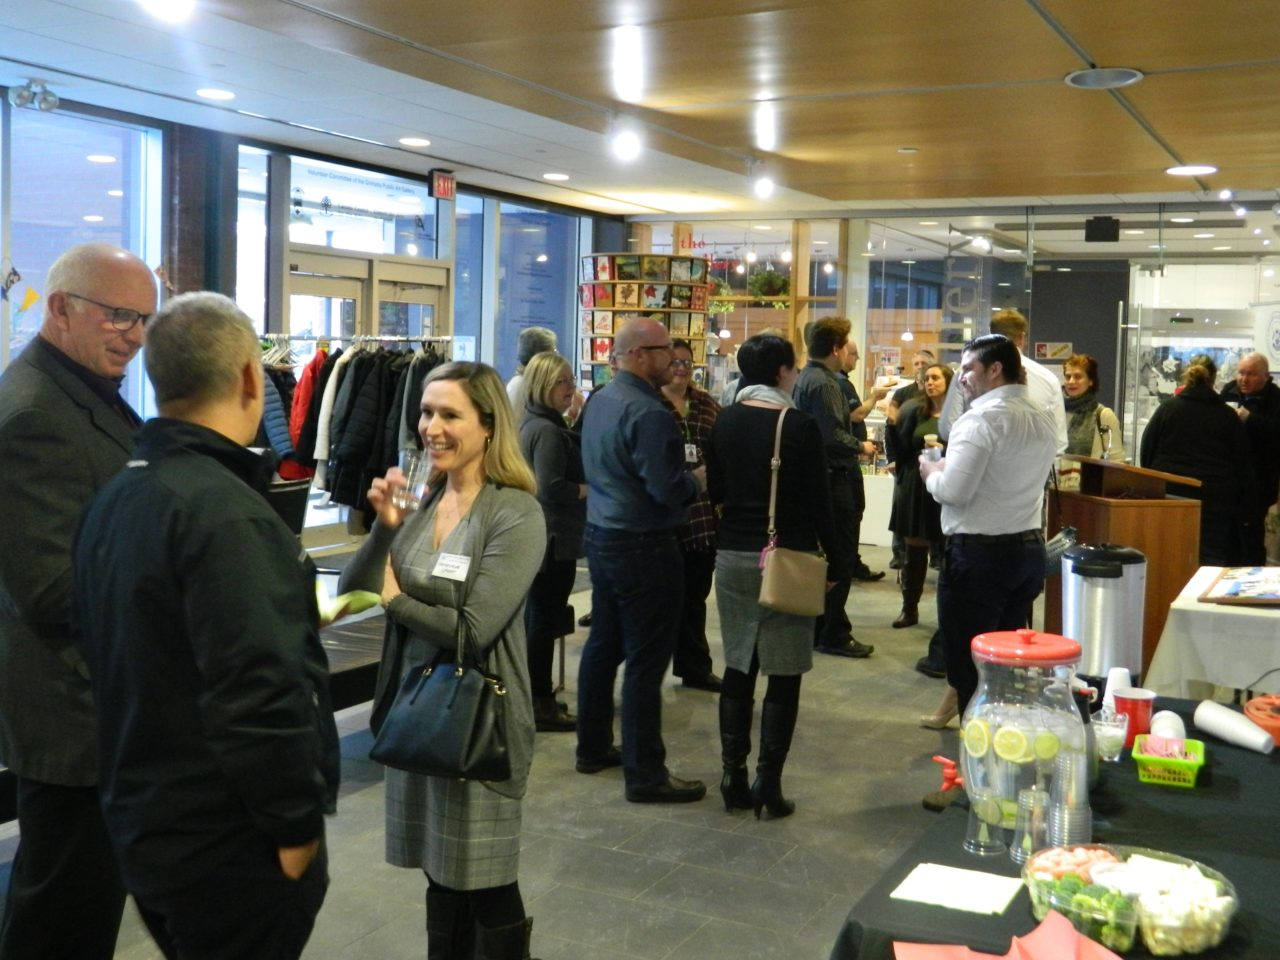 February 27 Business After 5 at Grimsby Public Library and Art Gallery